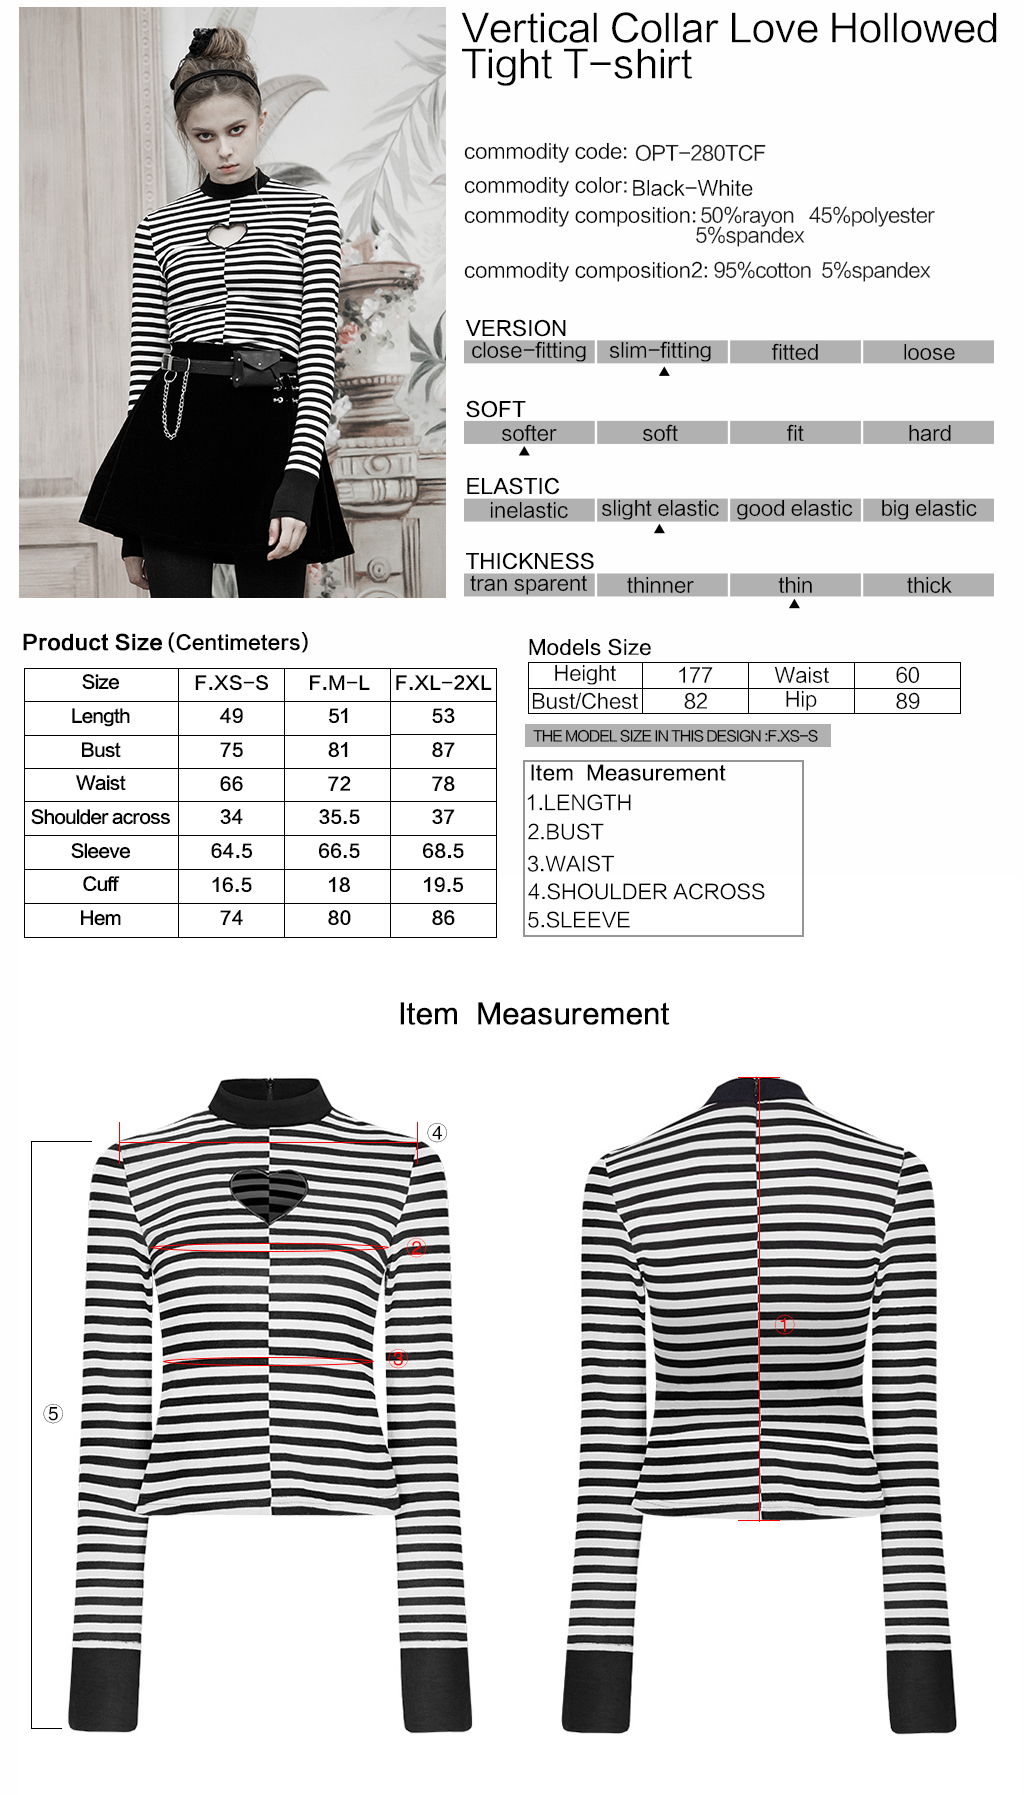 Punk Rave Gothic casual women's black white striped standing collar hollowed heart chest long sleeve top OPT-280